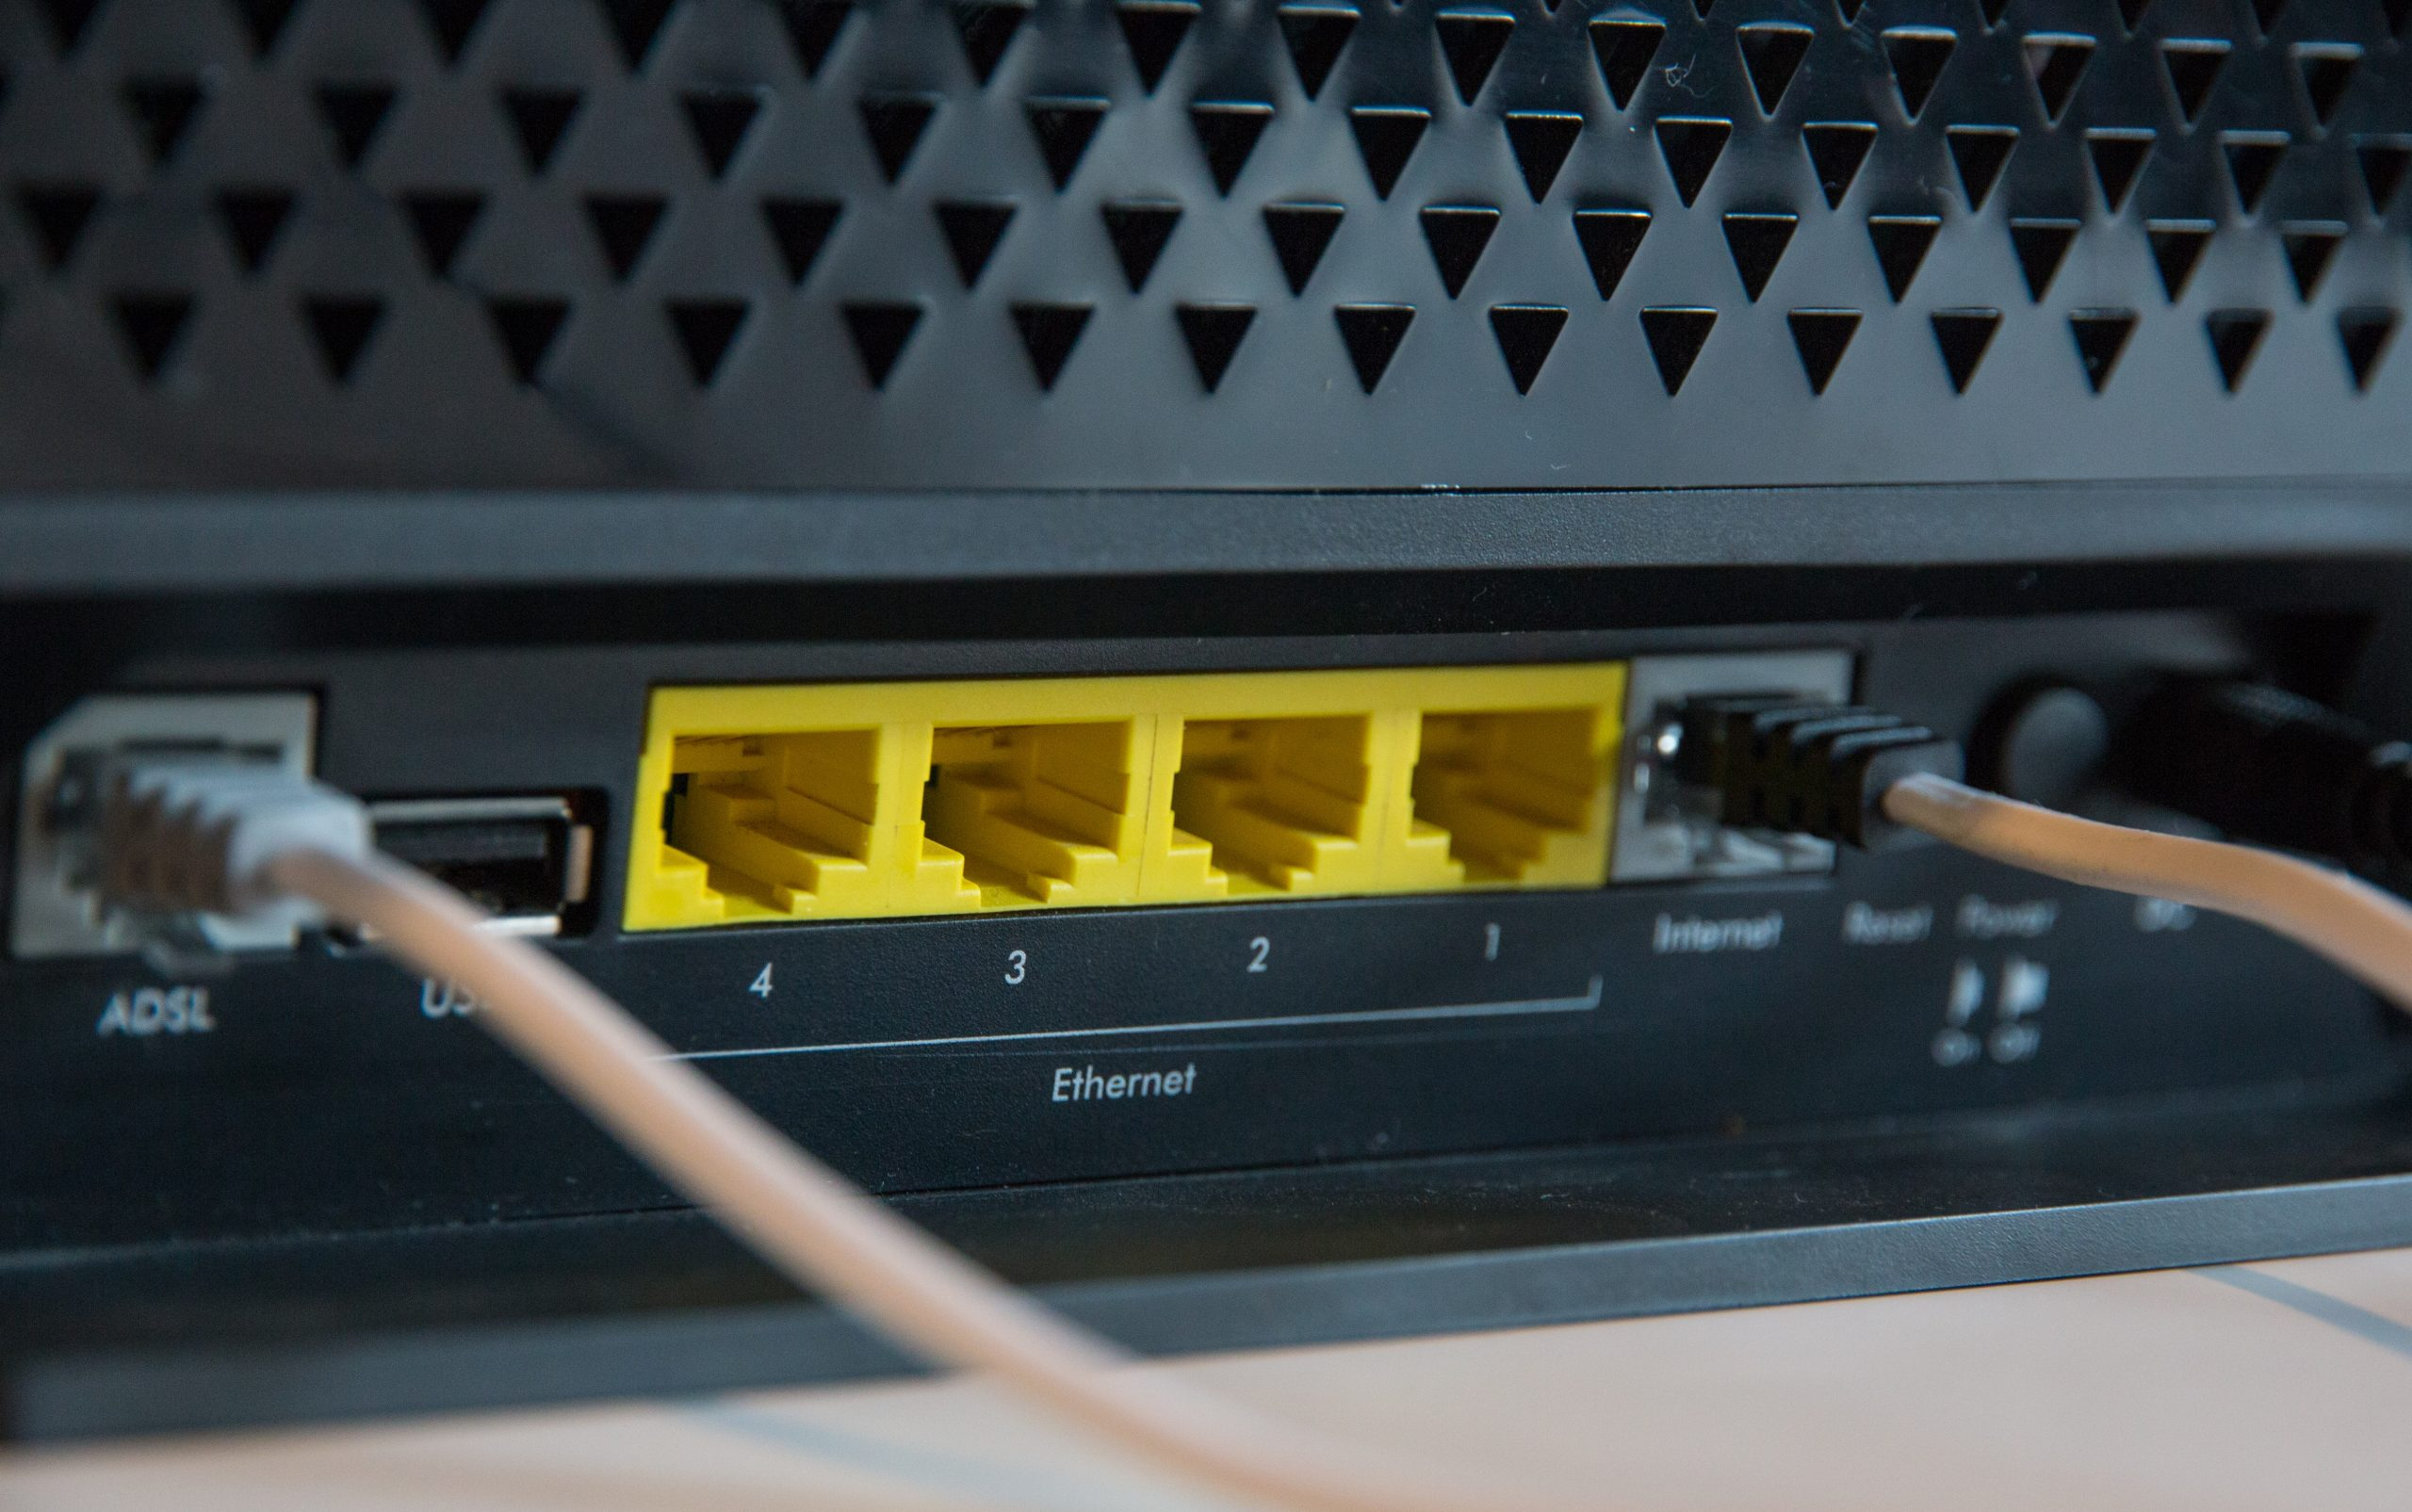 A closeup image of a router with two ethernet cords.